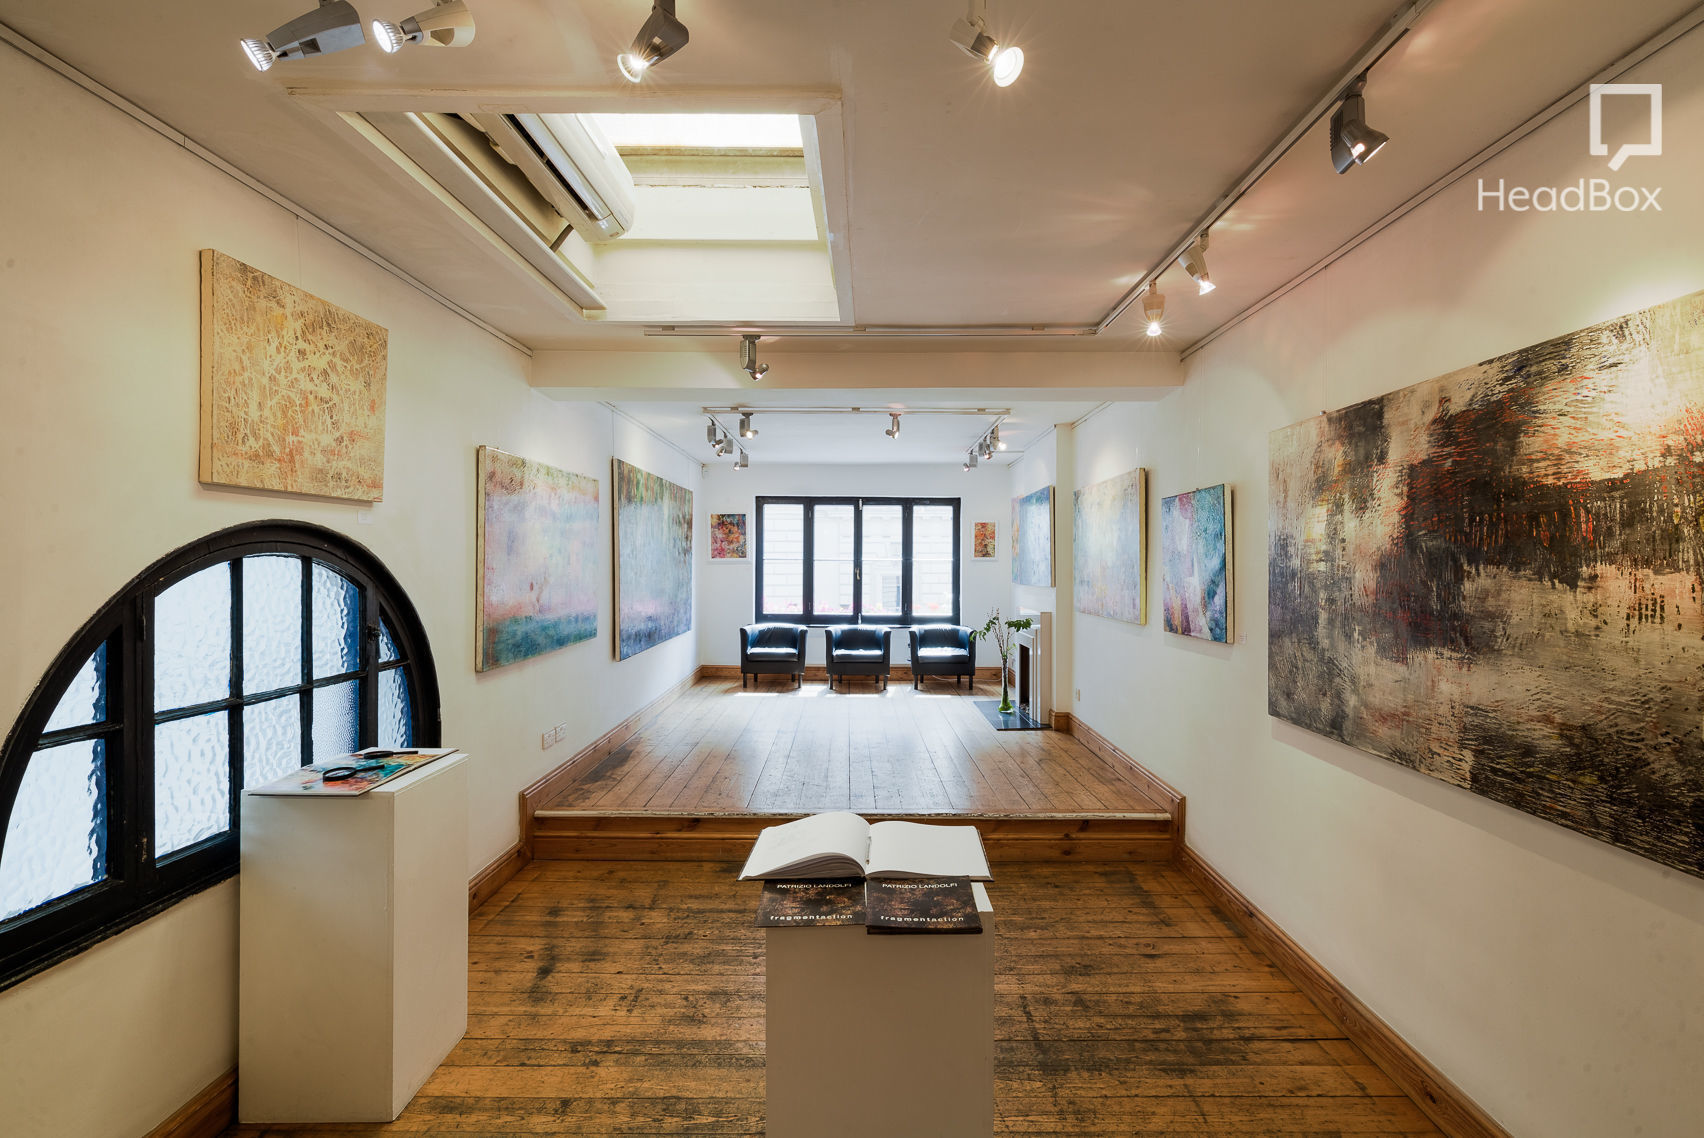 Exclusive Venue Hire, Royal Opera Arcade Gallery